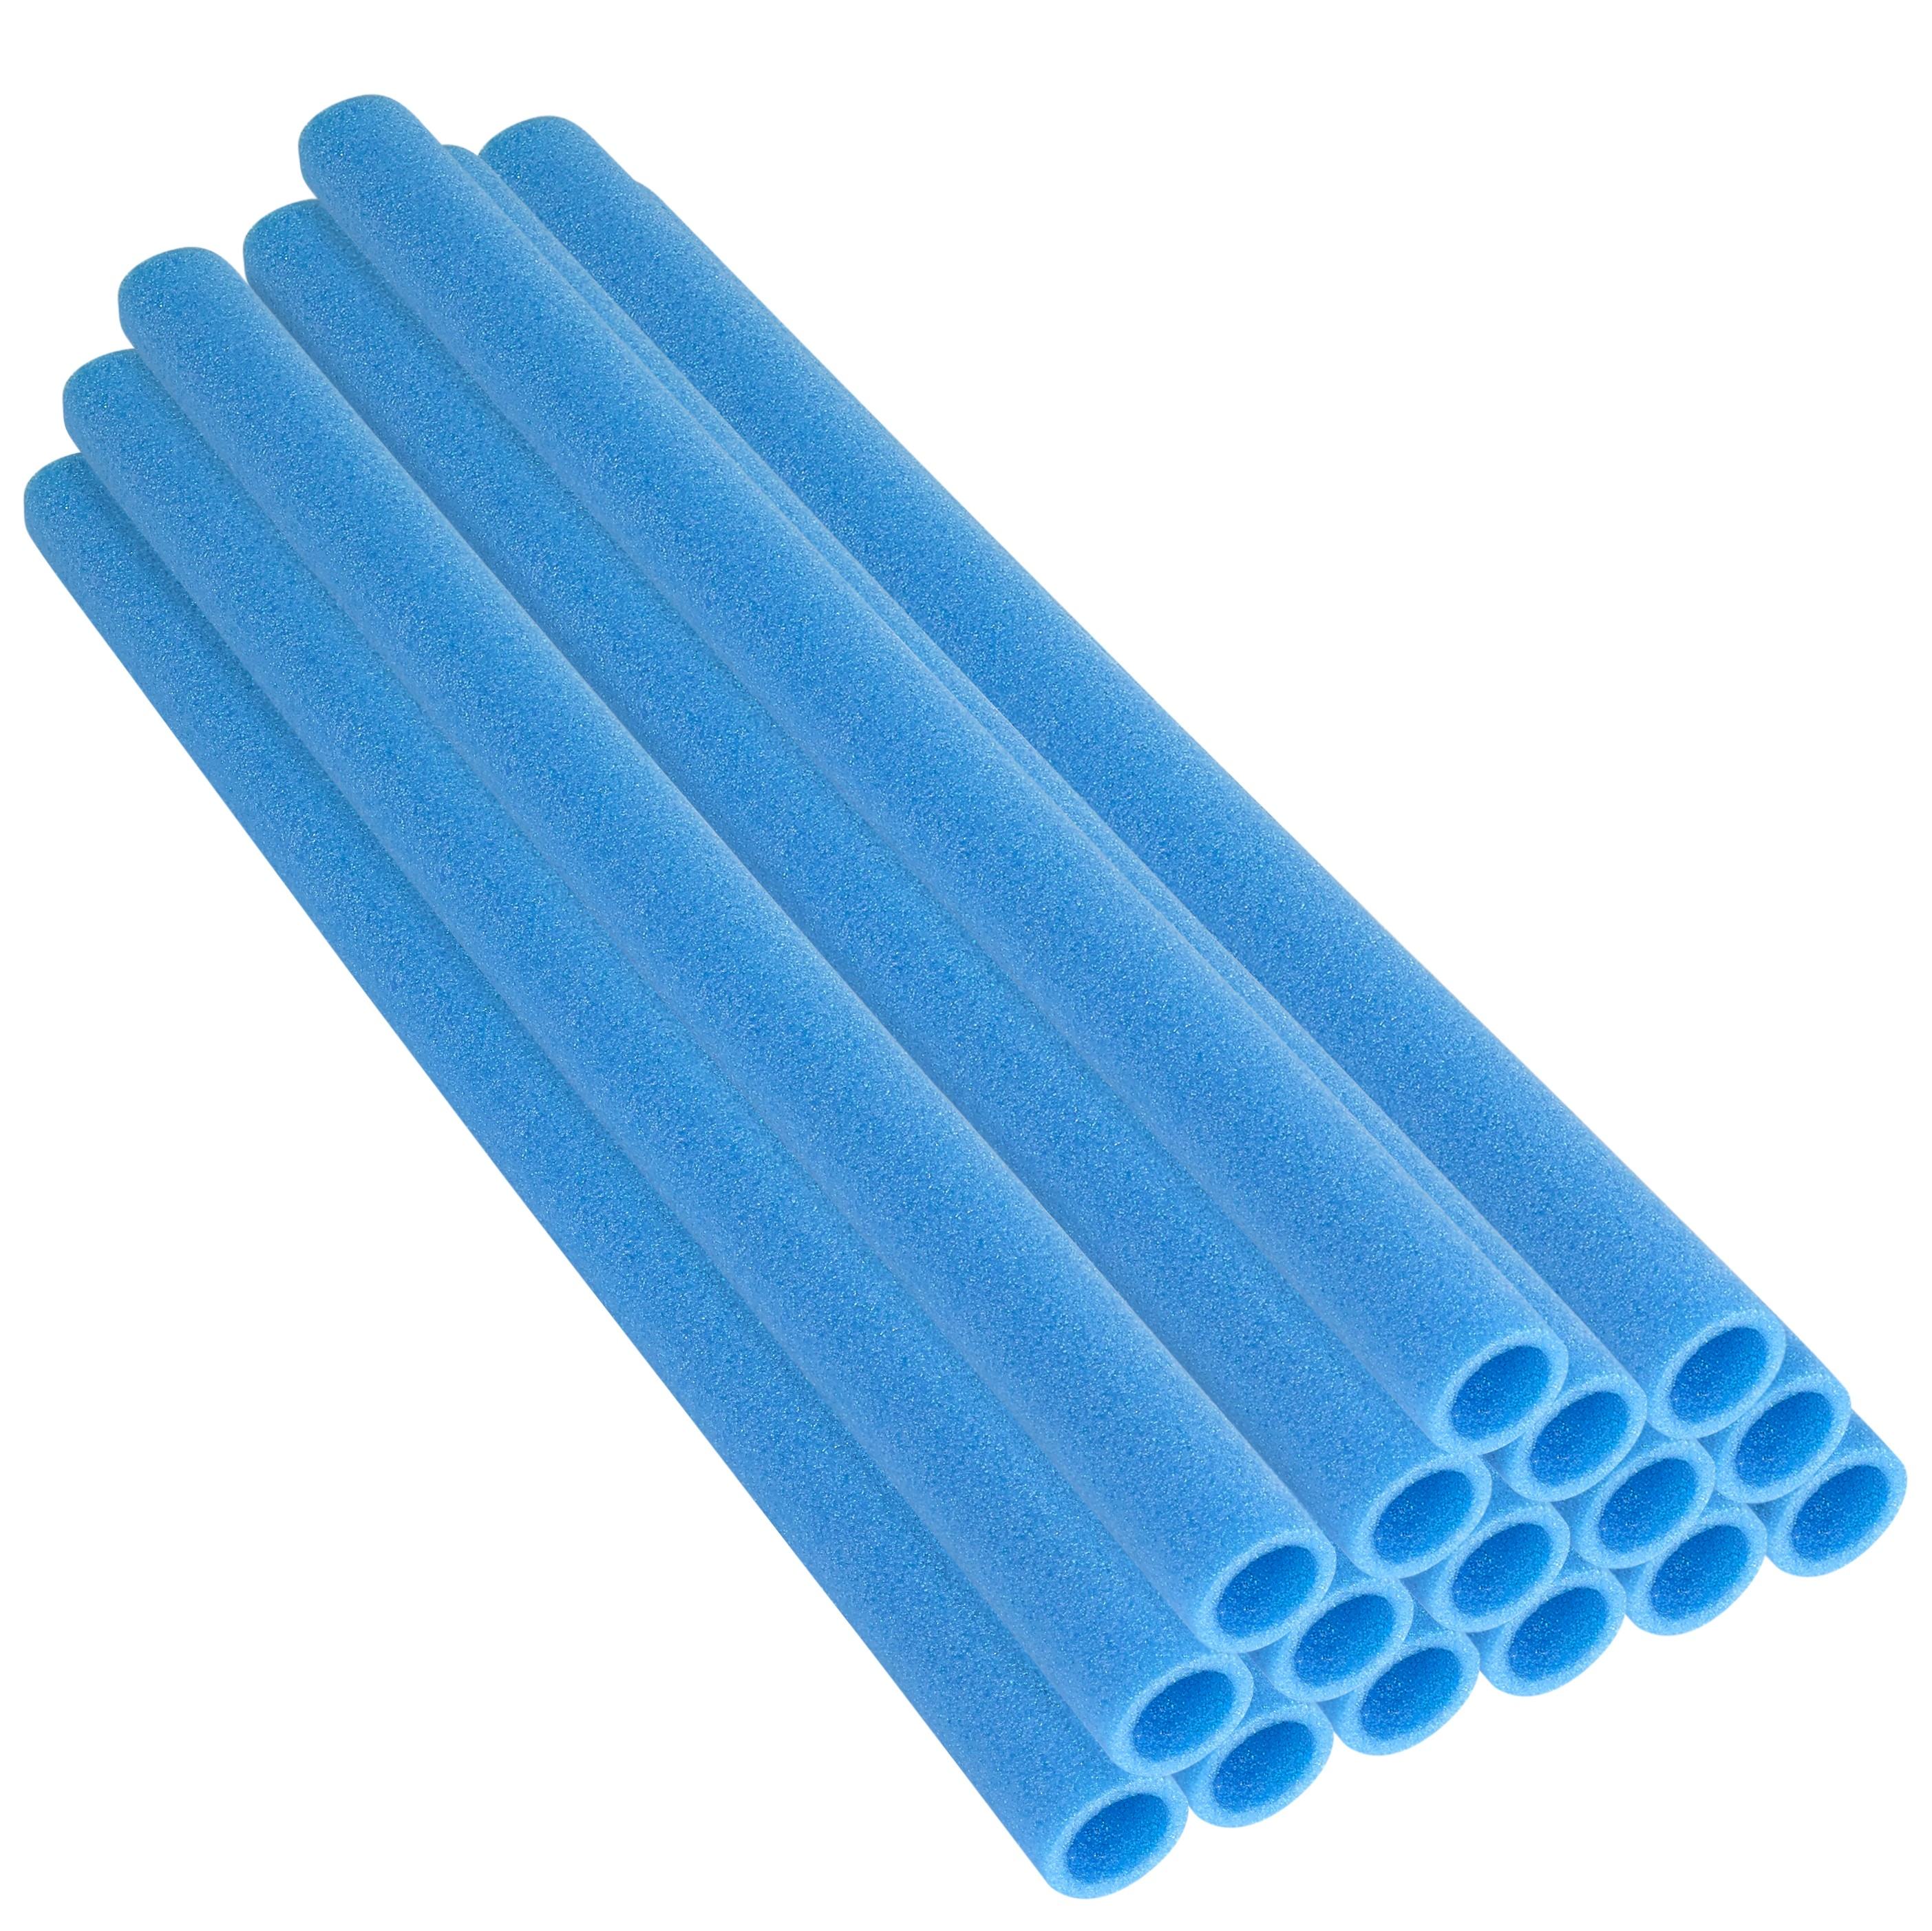 "33 Inch Trampoline Pole Foam Sleeves, fits for 1.5"" Diameter Pole - Set of 16 - Blue"